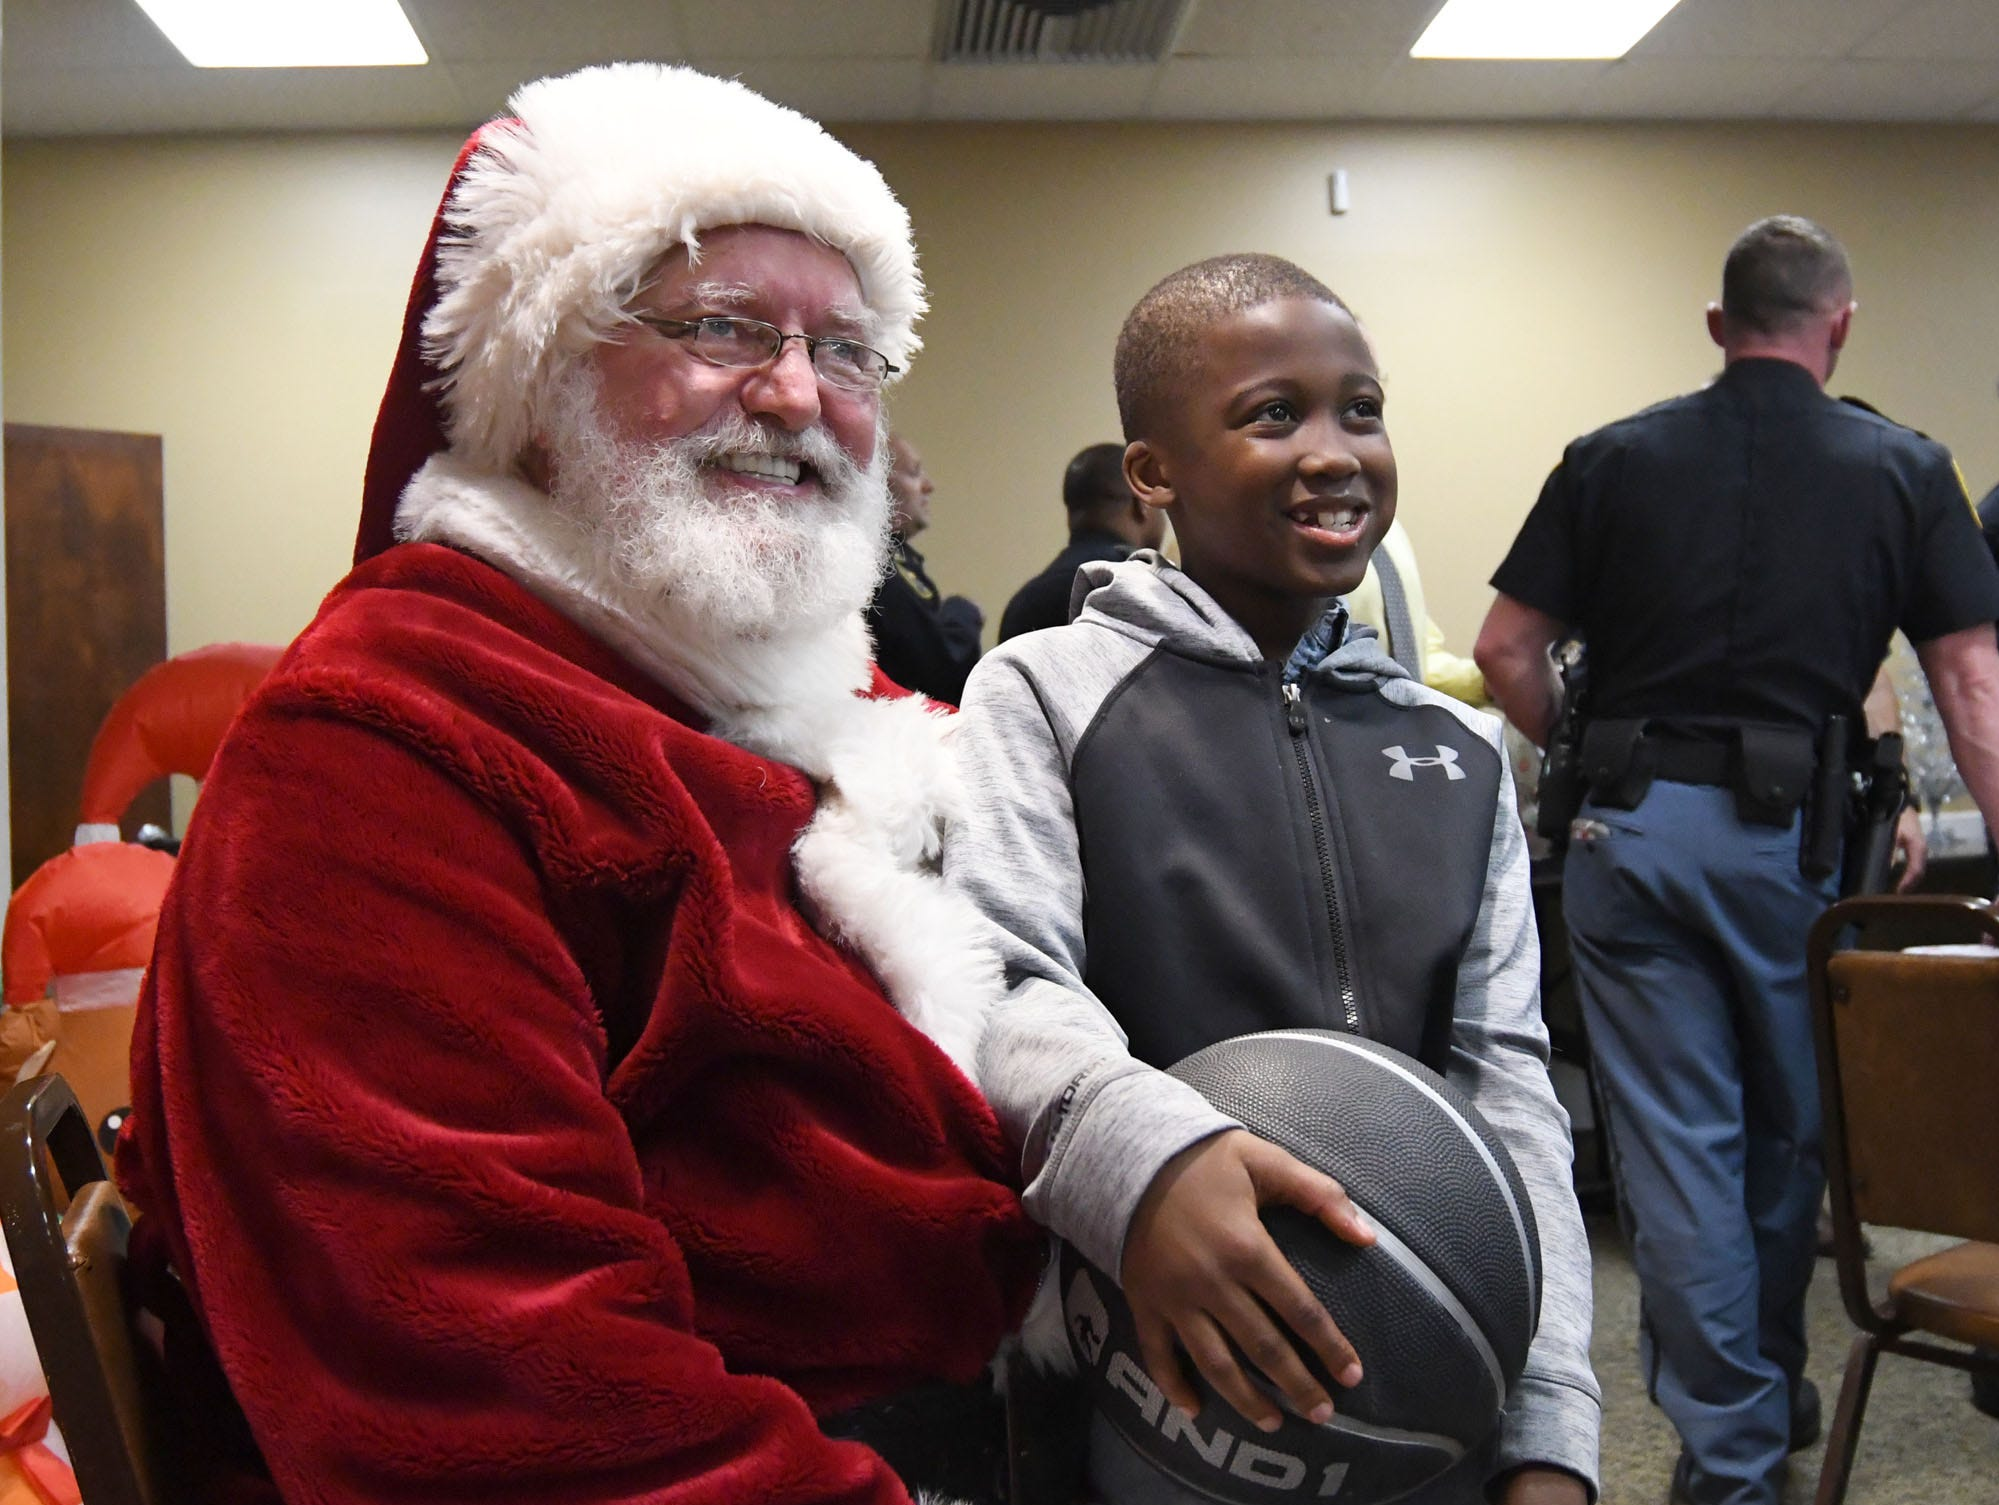 Devin Thompson, 8, gets presents from Santa Claus during the Hattiesburg Police Department's Victim Service Unit's Hearts of Hope Christmas party for victims affected by violent crimes at Jackie Sherrill Community Center on Thursday, December 20, 2018.